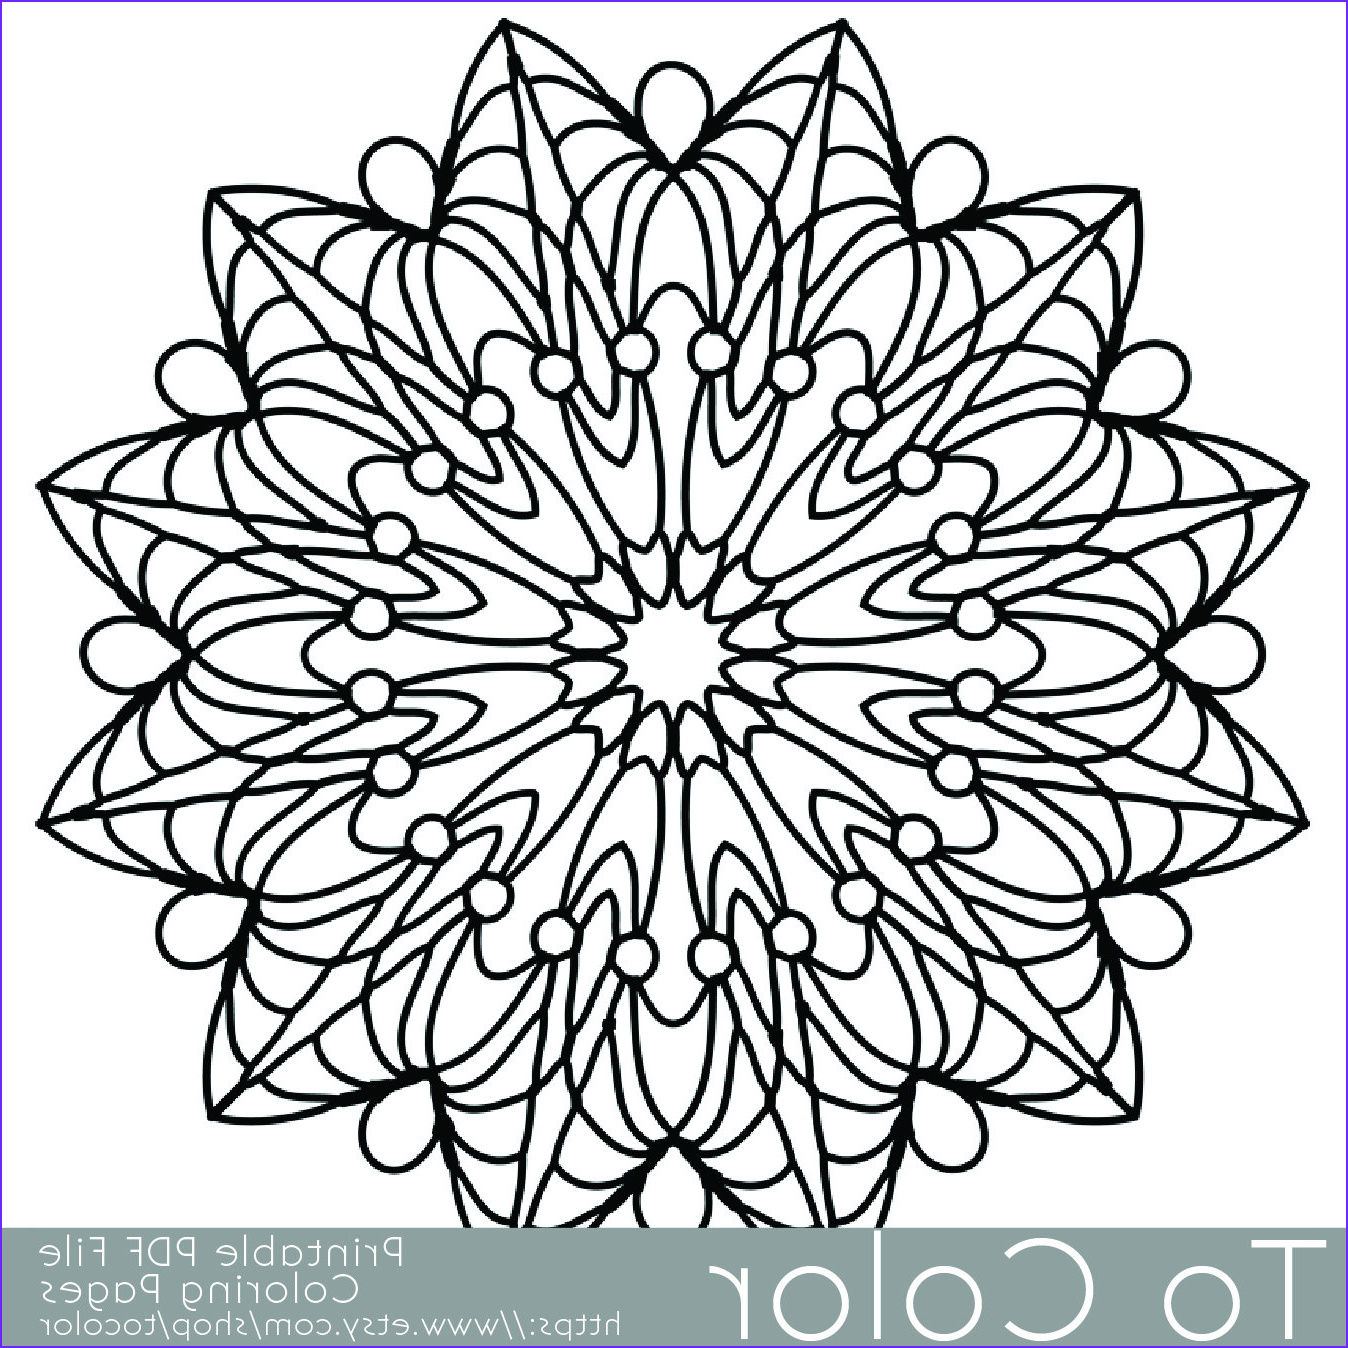 Pattern Coloring Books for Adults Unique Images Simple Printable Coloring Pages for Adults Gel Pens Mandala